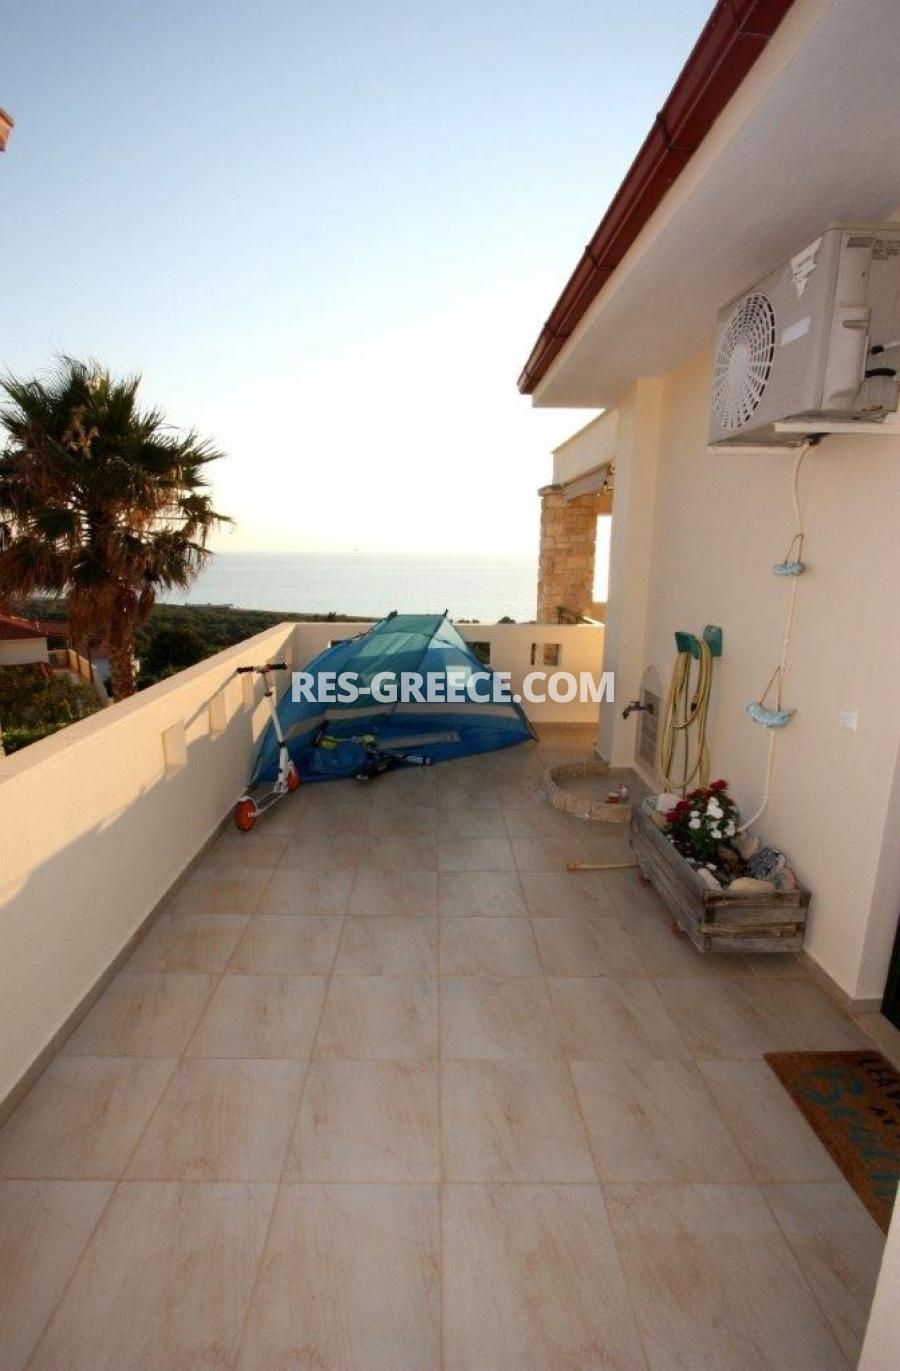 Okialos, Halkidiki-Kassandra, Greece - house for sale in the complex with pool and panoramic sea view - Photo 13